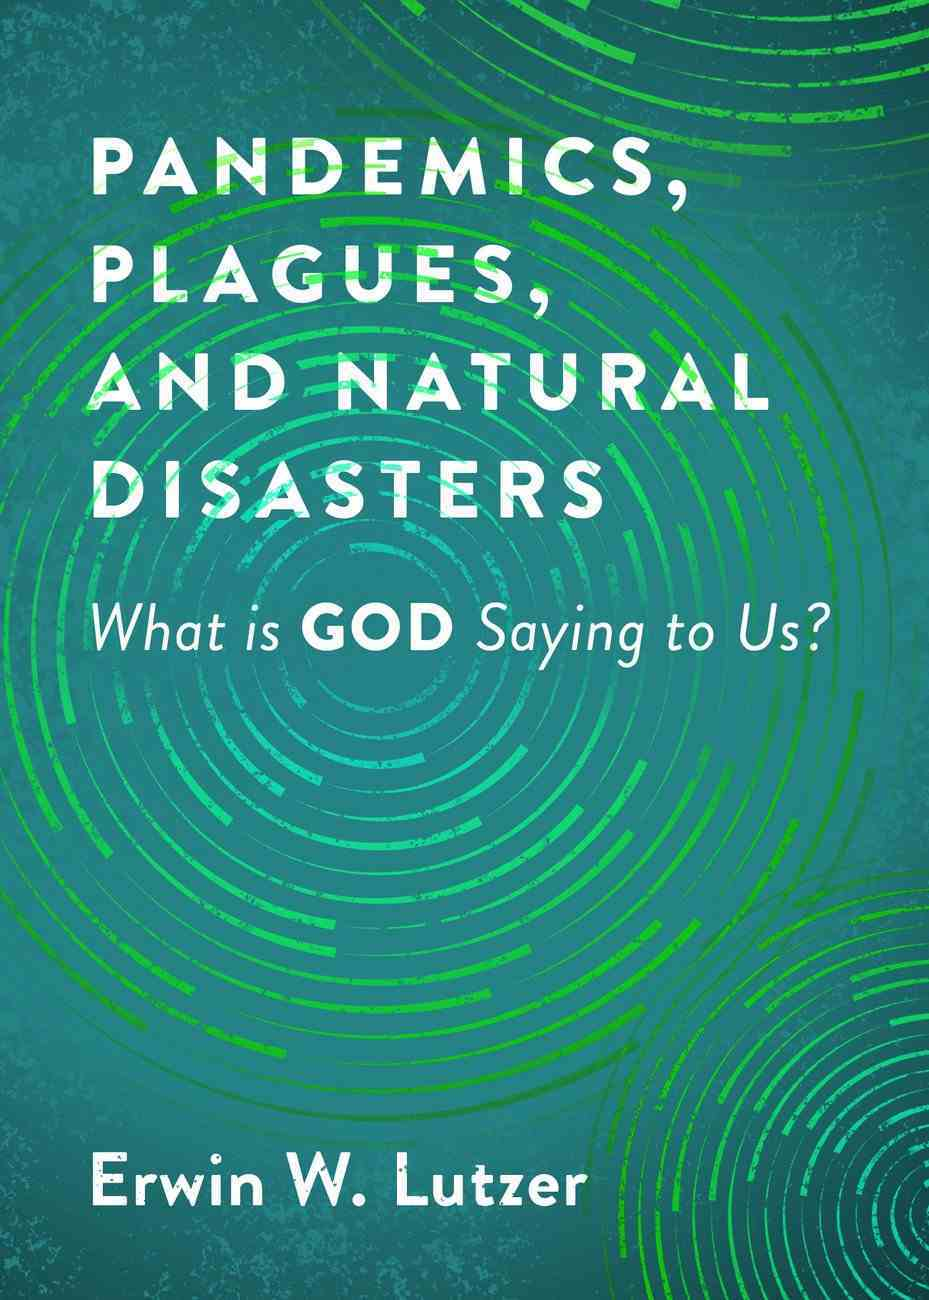 Pandemics, Plagues, and Natural Disasters: What is God Saying to Us? Paperback